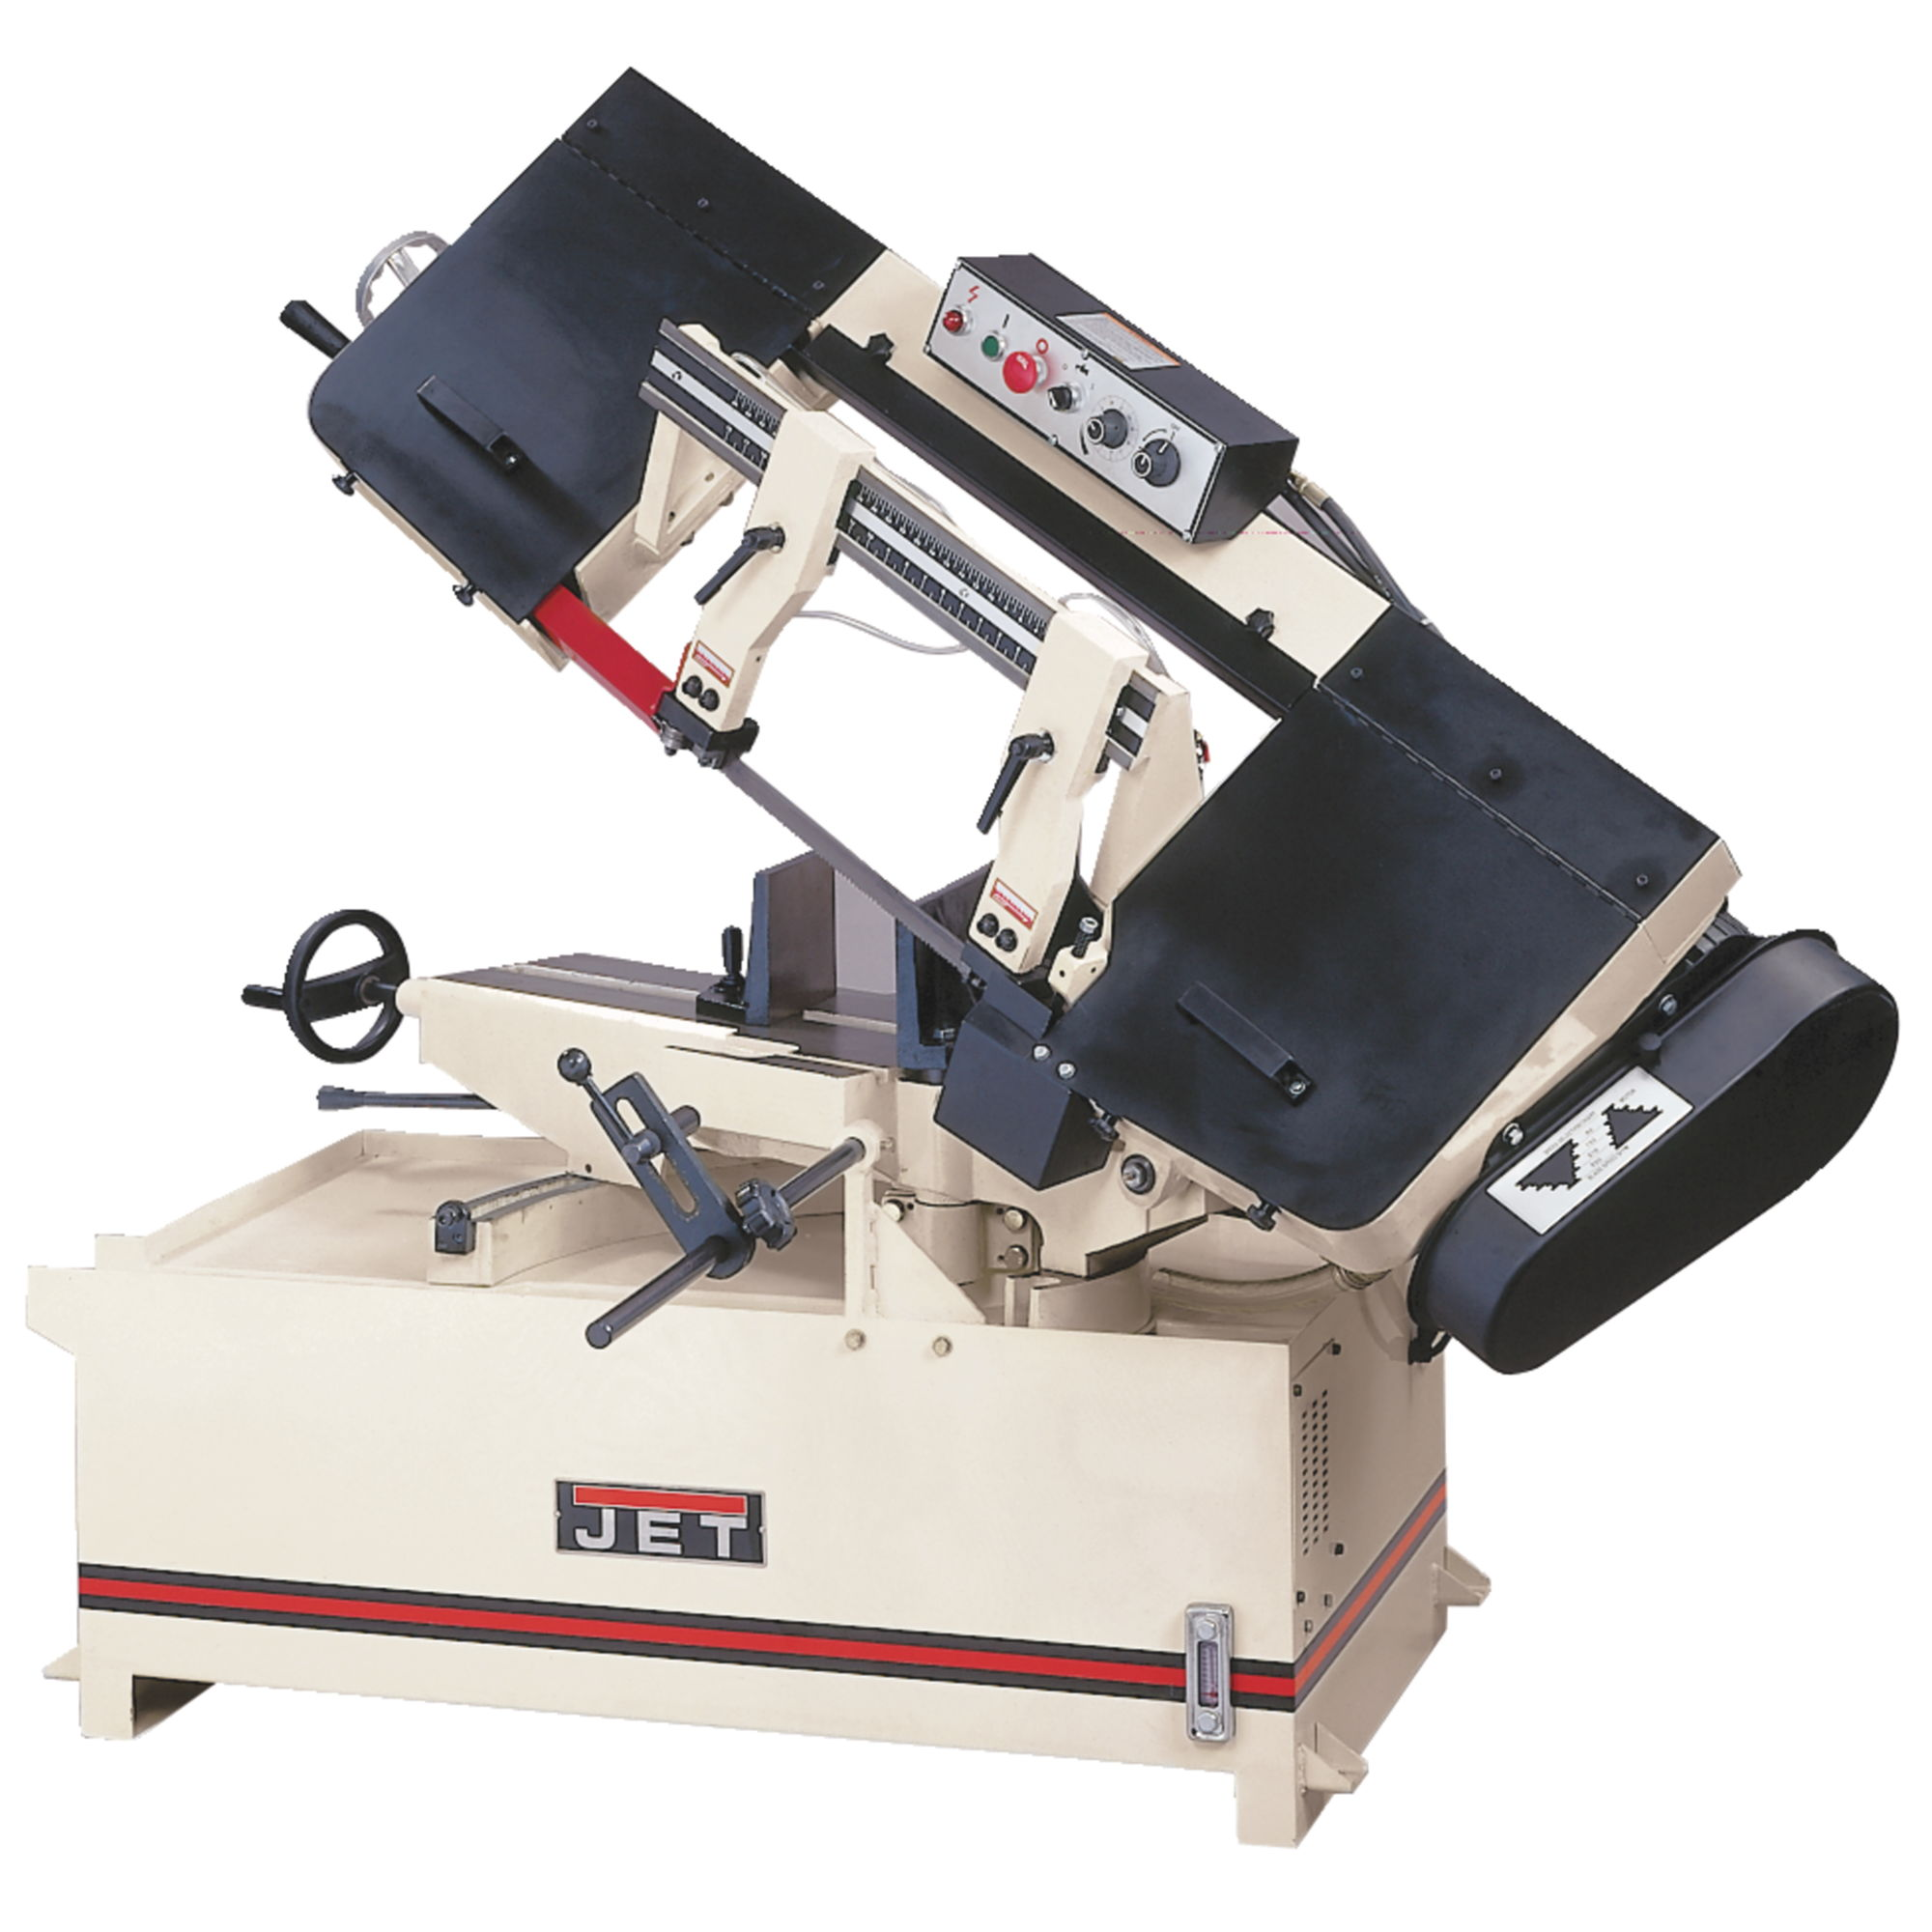 Jet 414477 MBS-1014W-3, 10 in. 3 HP 3-Phase Horizontal Mitering Band Saw